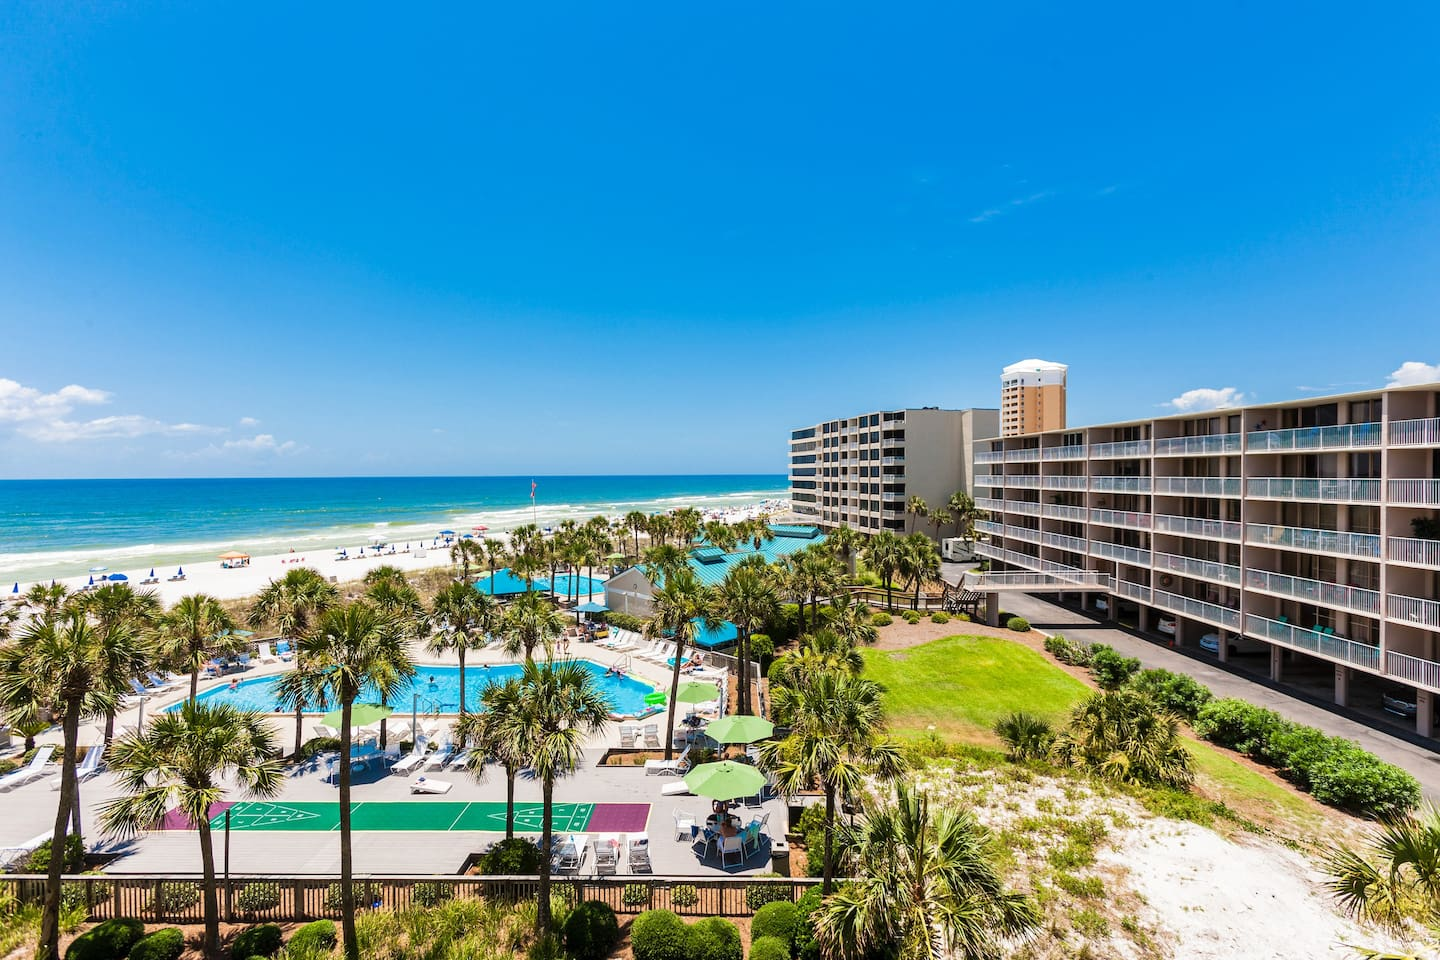 Welcome to Panama City Beach! Your rental is professionally managed by TurnKey Vacation Rentals. Admire your view of the Gulf and the pool from the balcony.